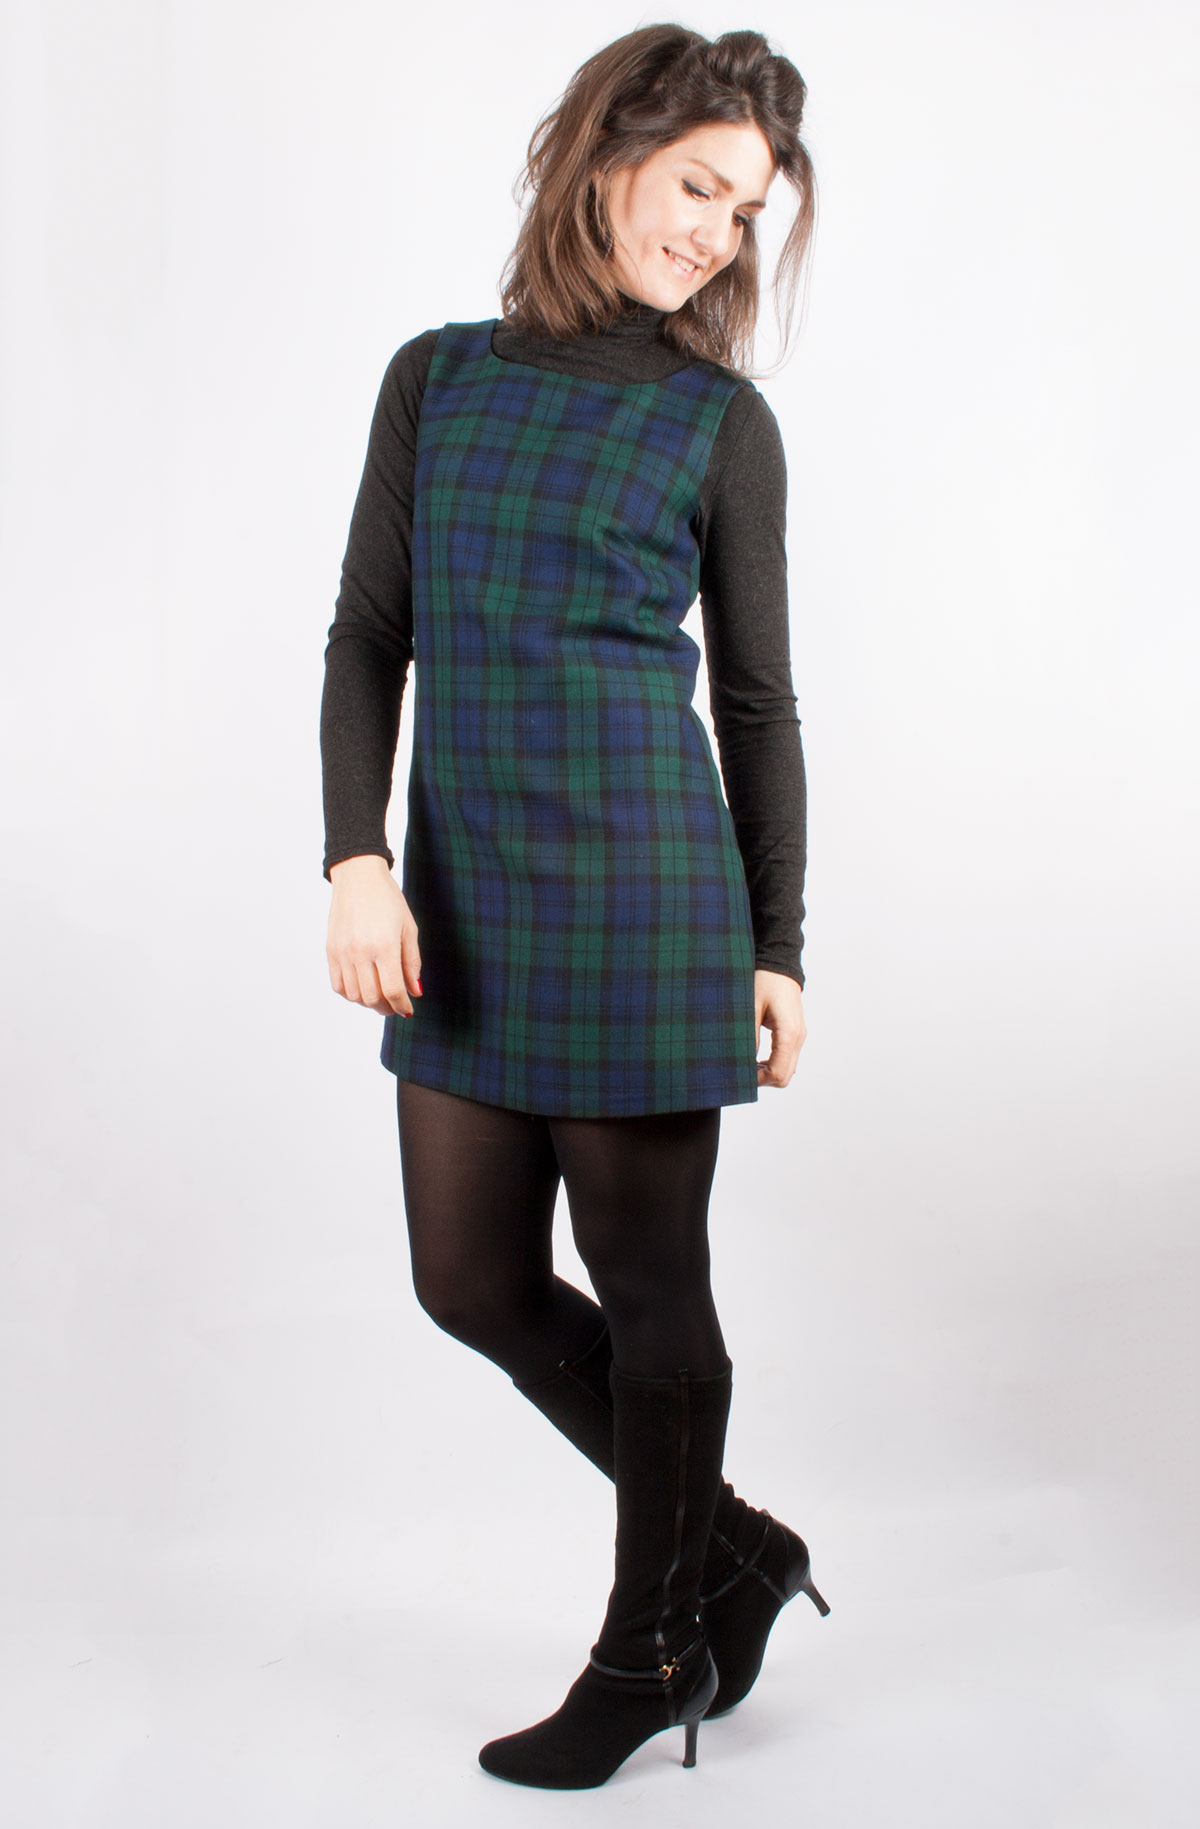 sewing a 60s tartan pinafore dress how to pattern match. Black Bedroom Furniture Sets. Home Design Ideas